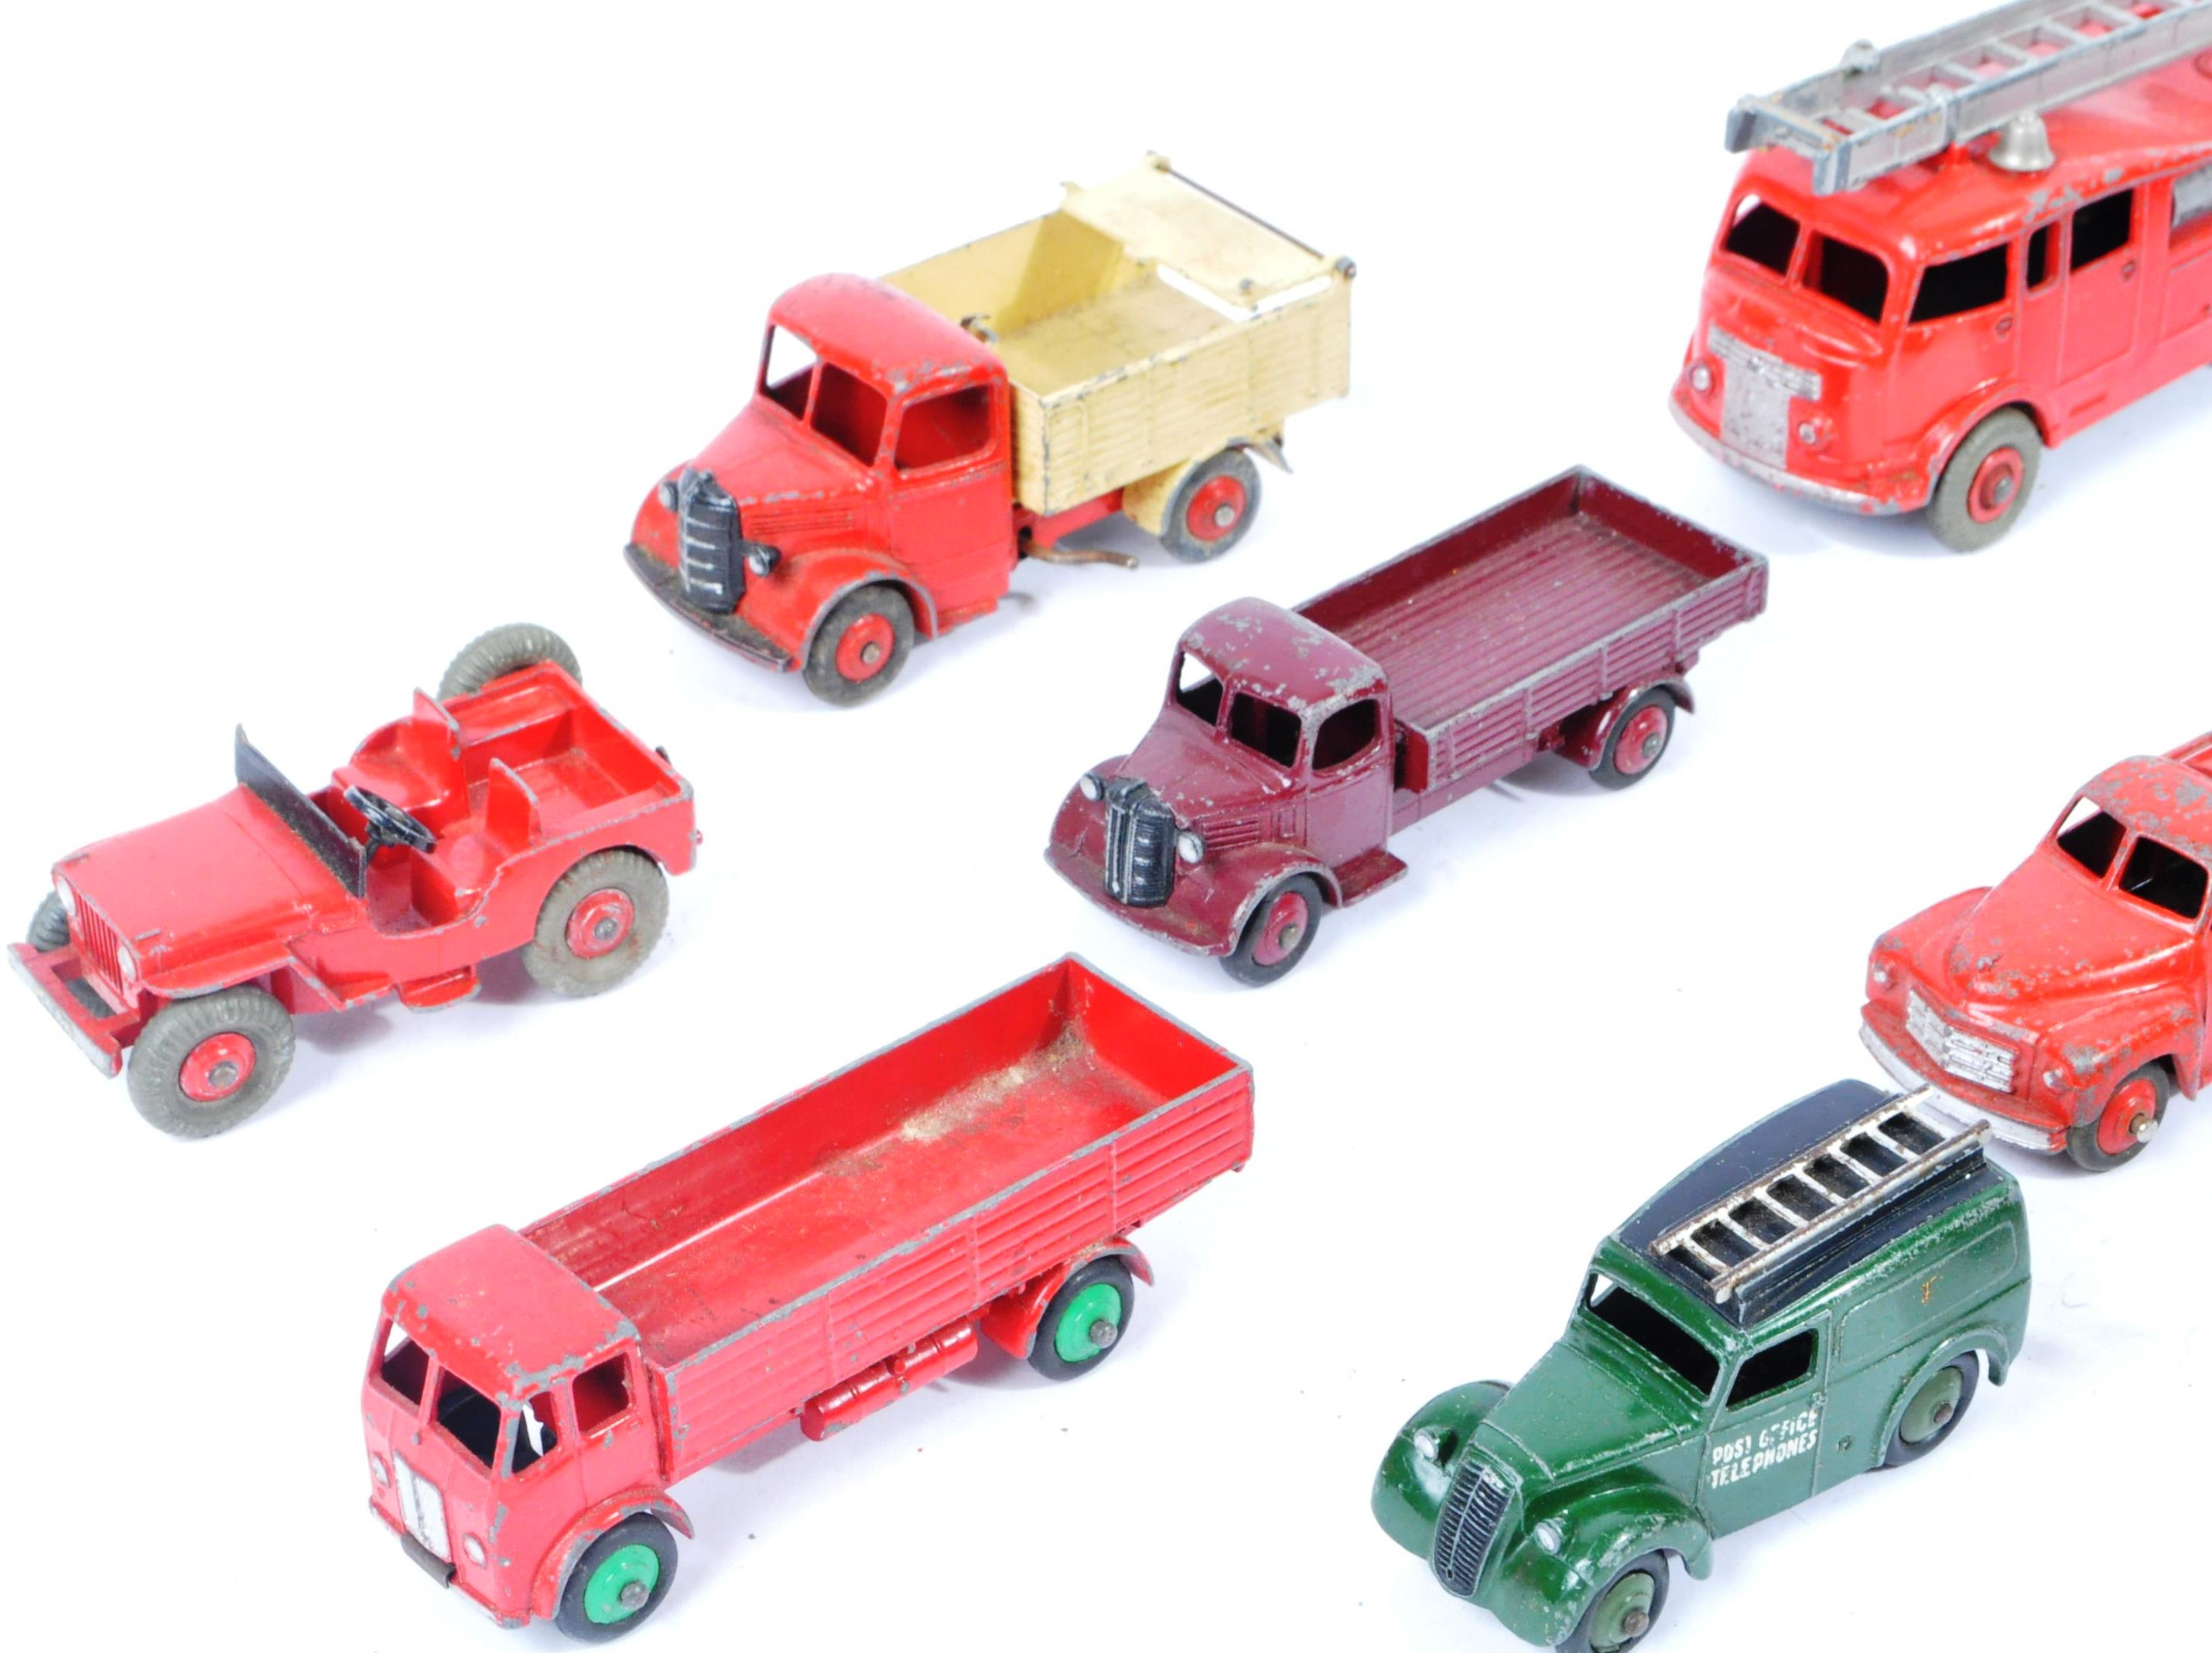 COLLECTION OF X10 VINTAGE DINKY TOYS DIECAST MODEL TRUCKS - Image 2 of 14